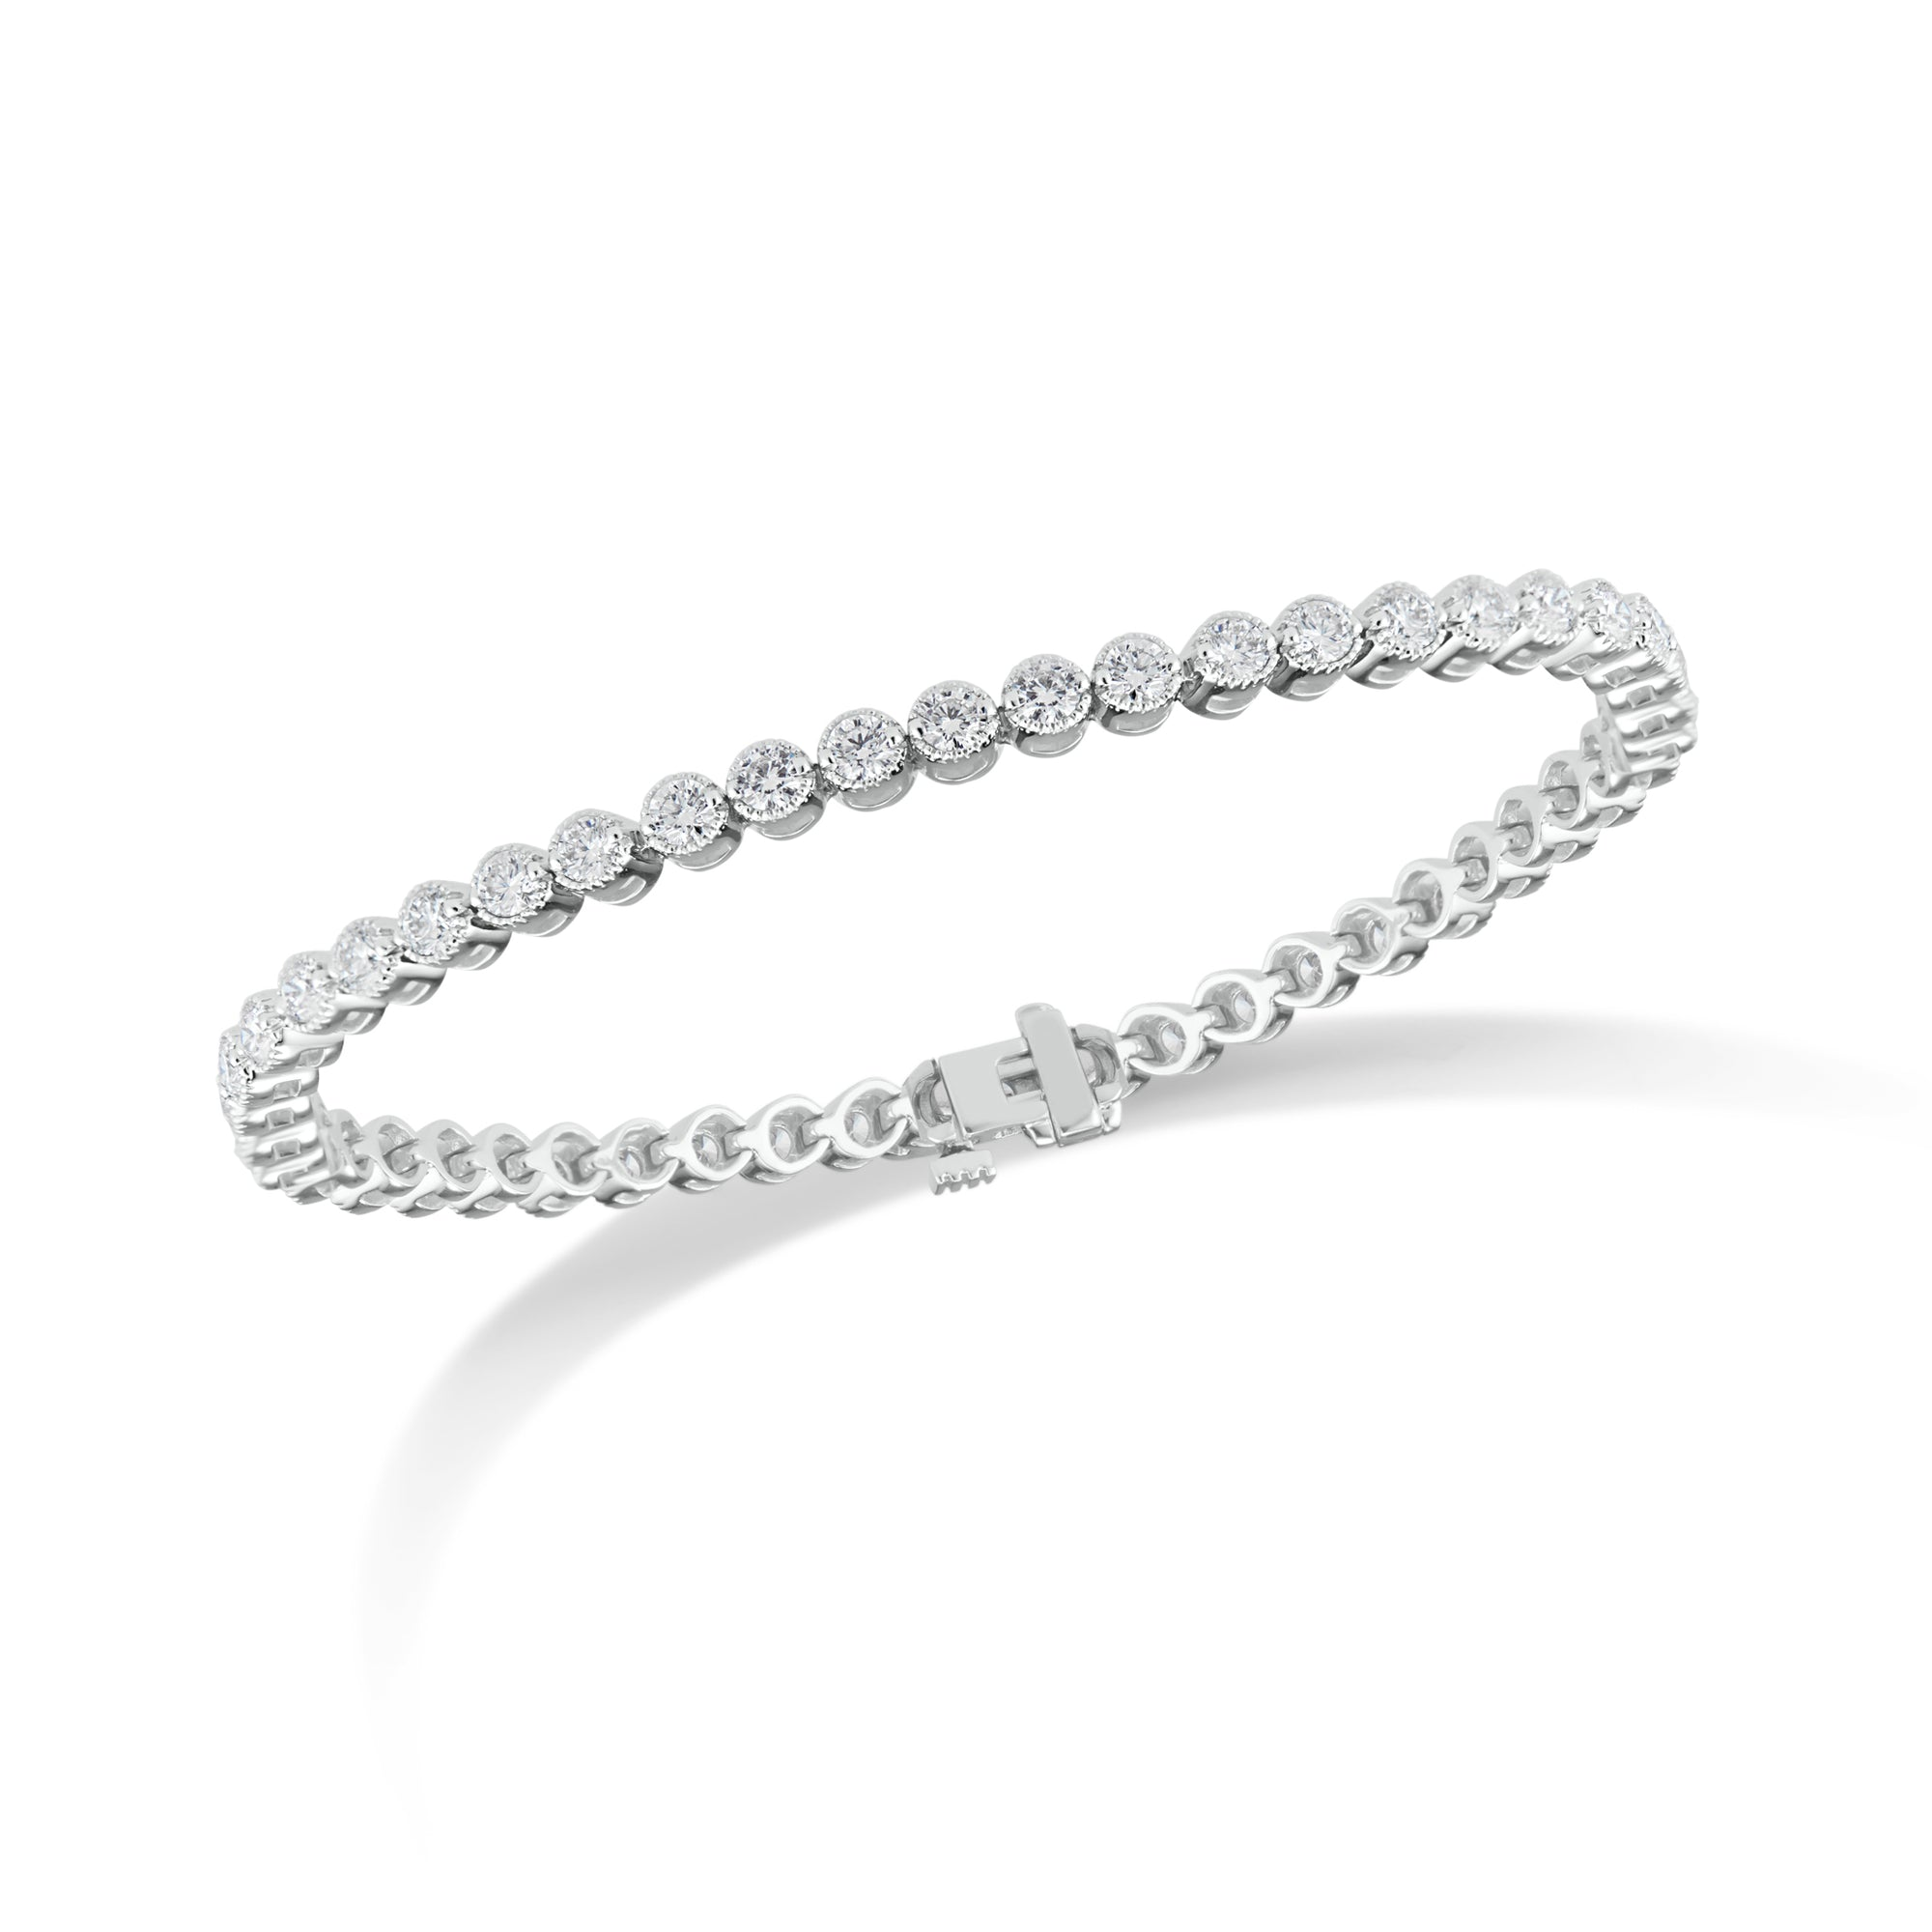 3.65 ct Diamond Tennis Bracelet